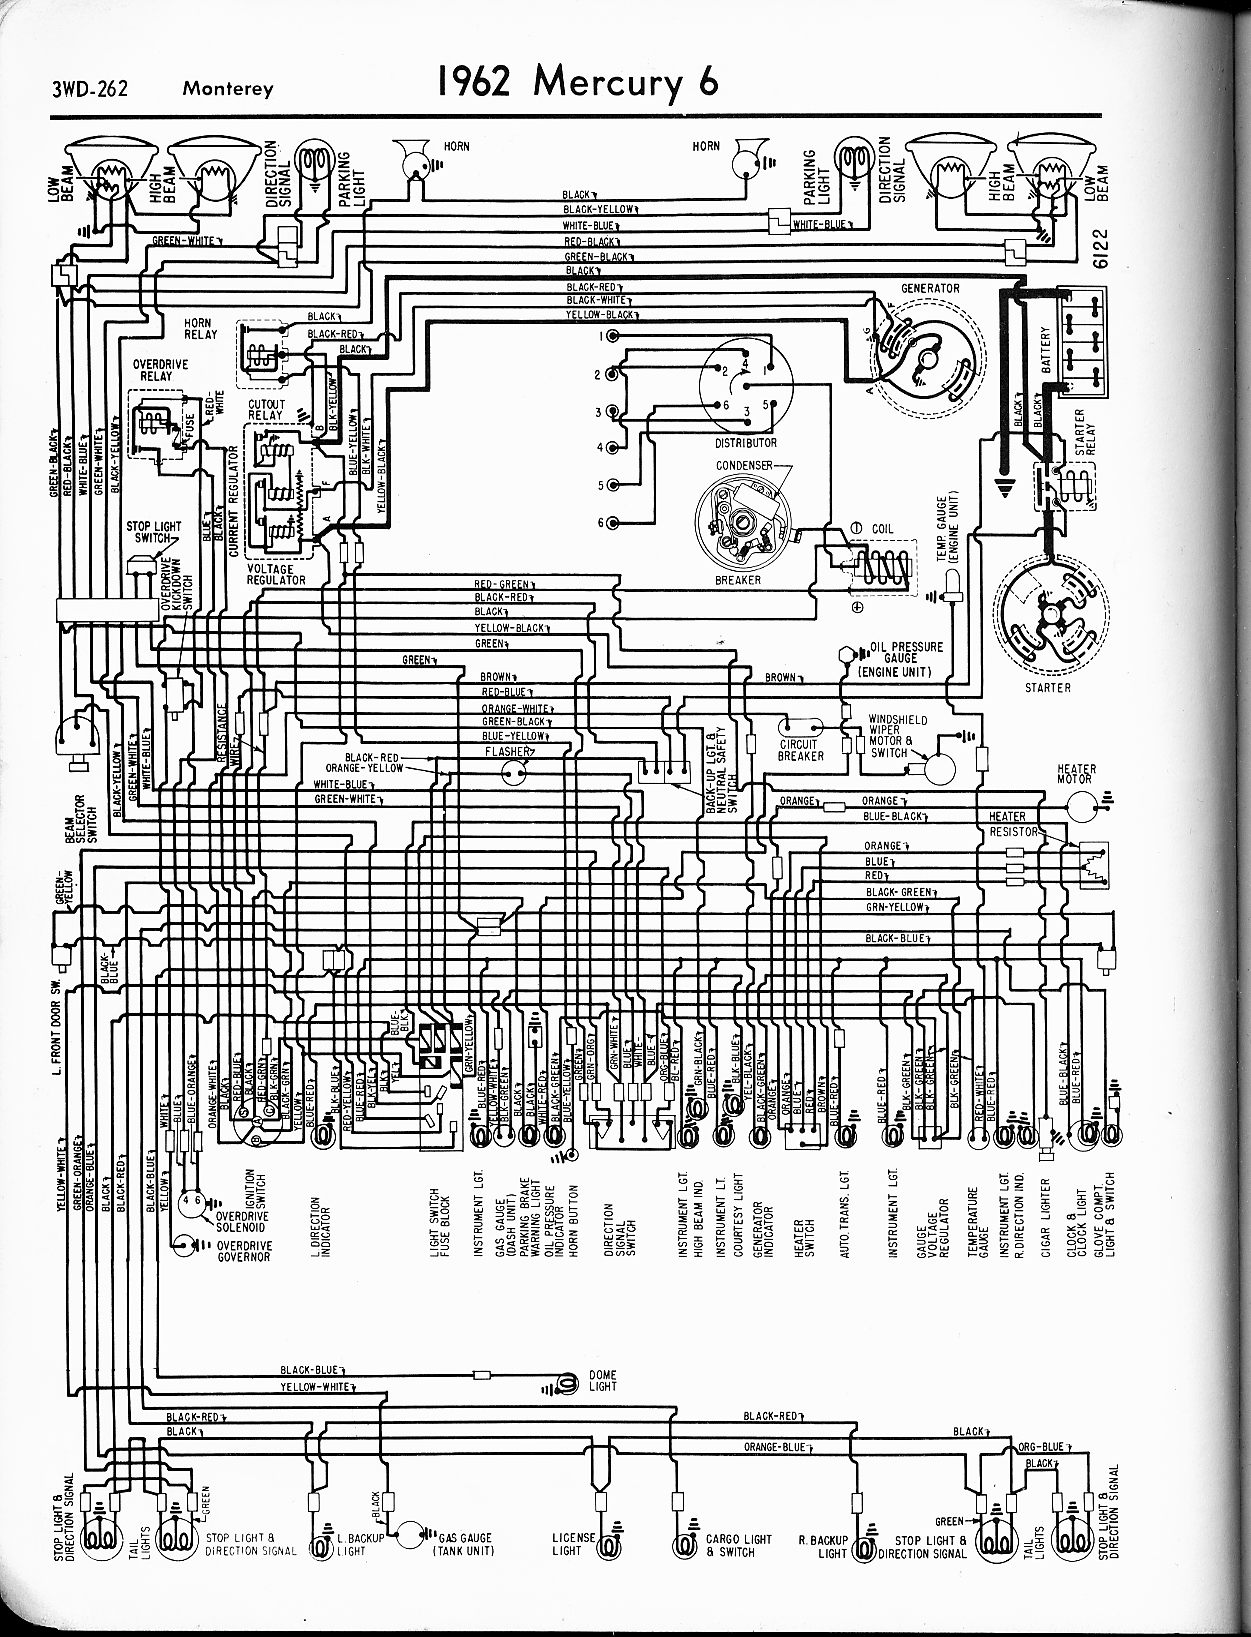 1954 Mercury Wiring Diagram - Data Wiring Diagram Blog on ford aerostar wiring diagram, ford f-250 super duty wiring diagram, 1937 ford wiring diagram, ford 500 wiring diagram, ford f500 wiring diagram, ford fairlane rear suspension, 1963 ford wiring diagram, 1964 ford truck wiring diagram, ford fairlane fuel tank, ford truck wiring schematics, ford granada wiring diagram, ford econoline van wiring diagram, ford fairlane exhaust, ford fairlane radio, ford electrical wiring diagrams, ford fairlane specifications, ford fairlane body, ford thunderbird wiring diagram, 1965 ford truck wiring diagram, ford flex wiring diagram,